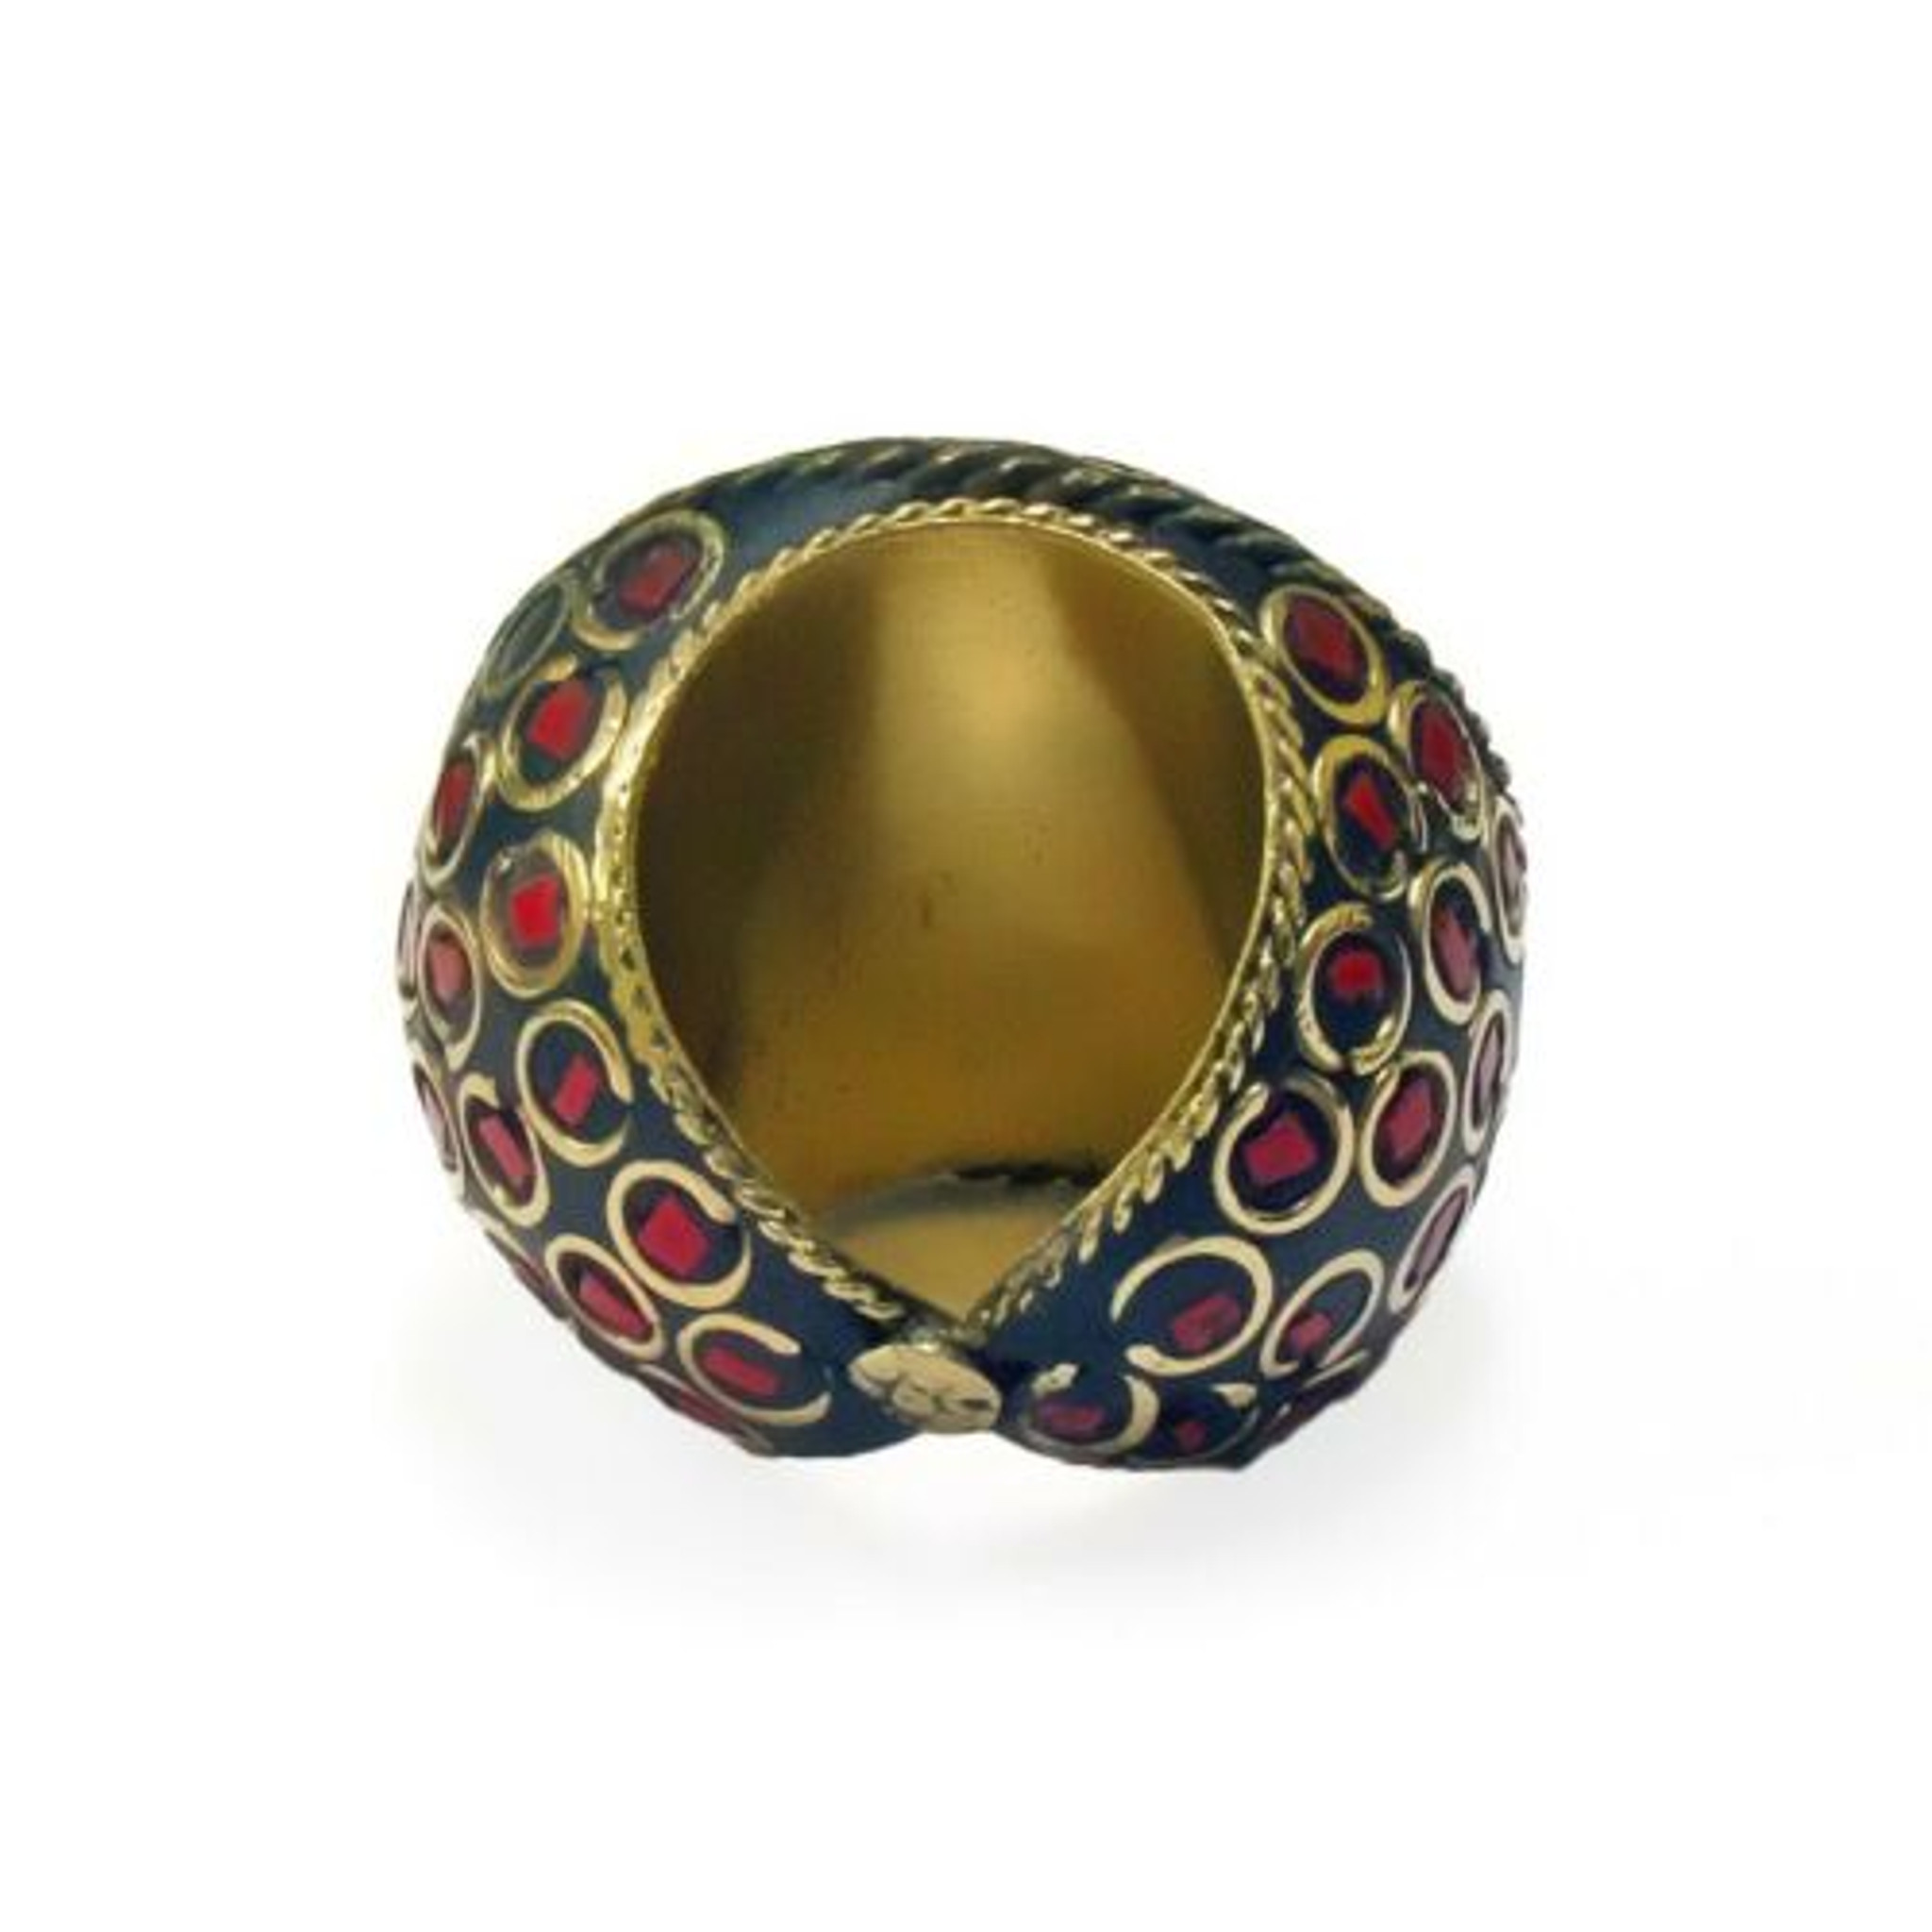 Ashanti Terracotta and Mosaic Sultani Ring - Green & Red